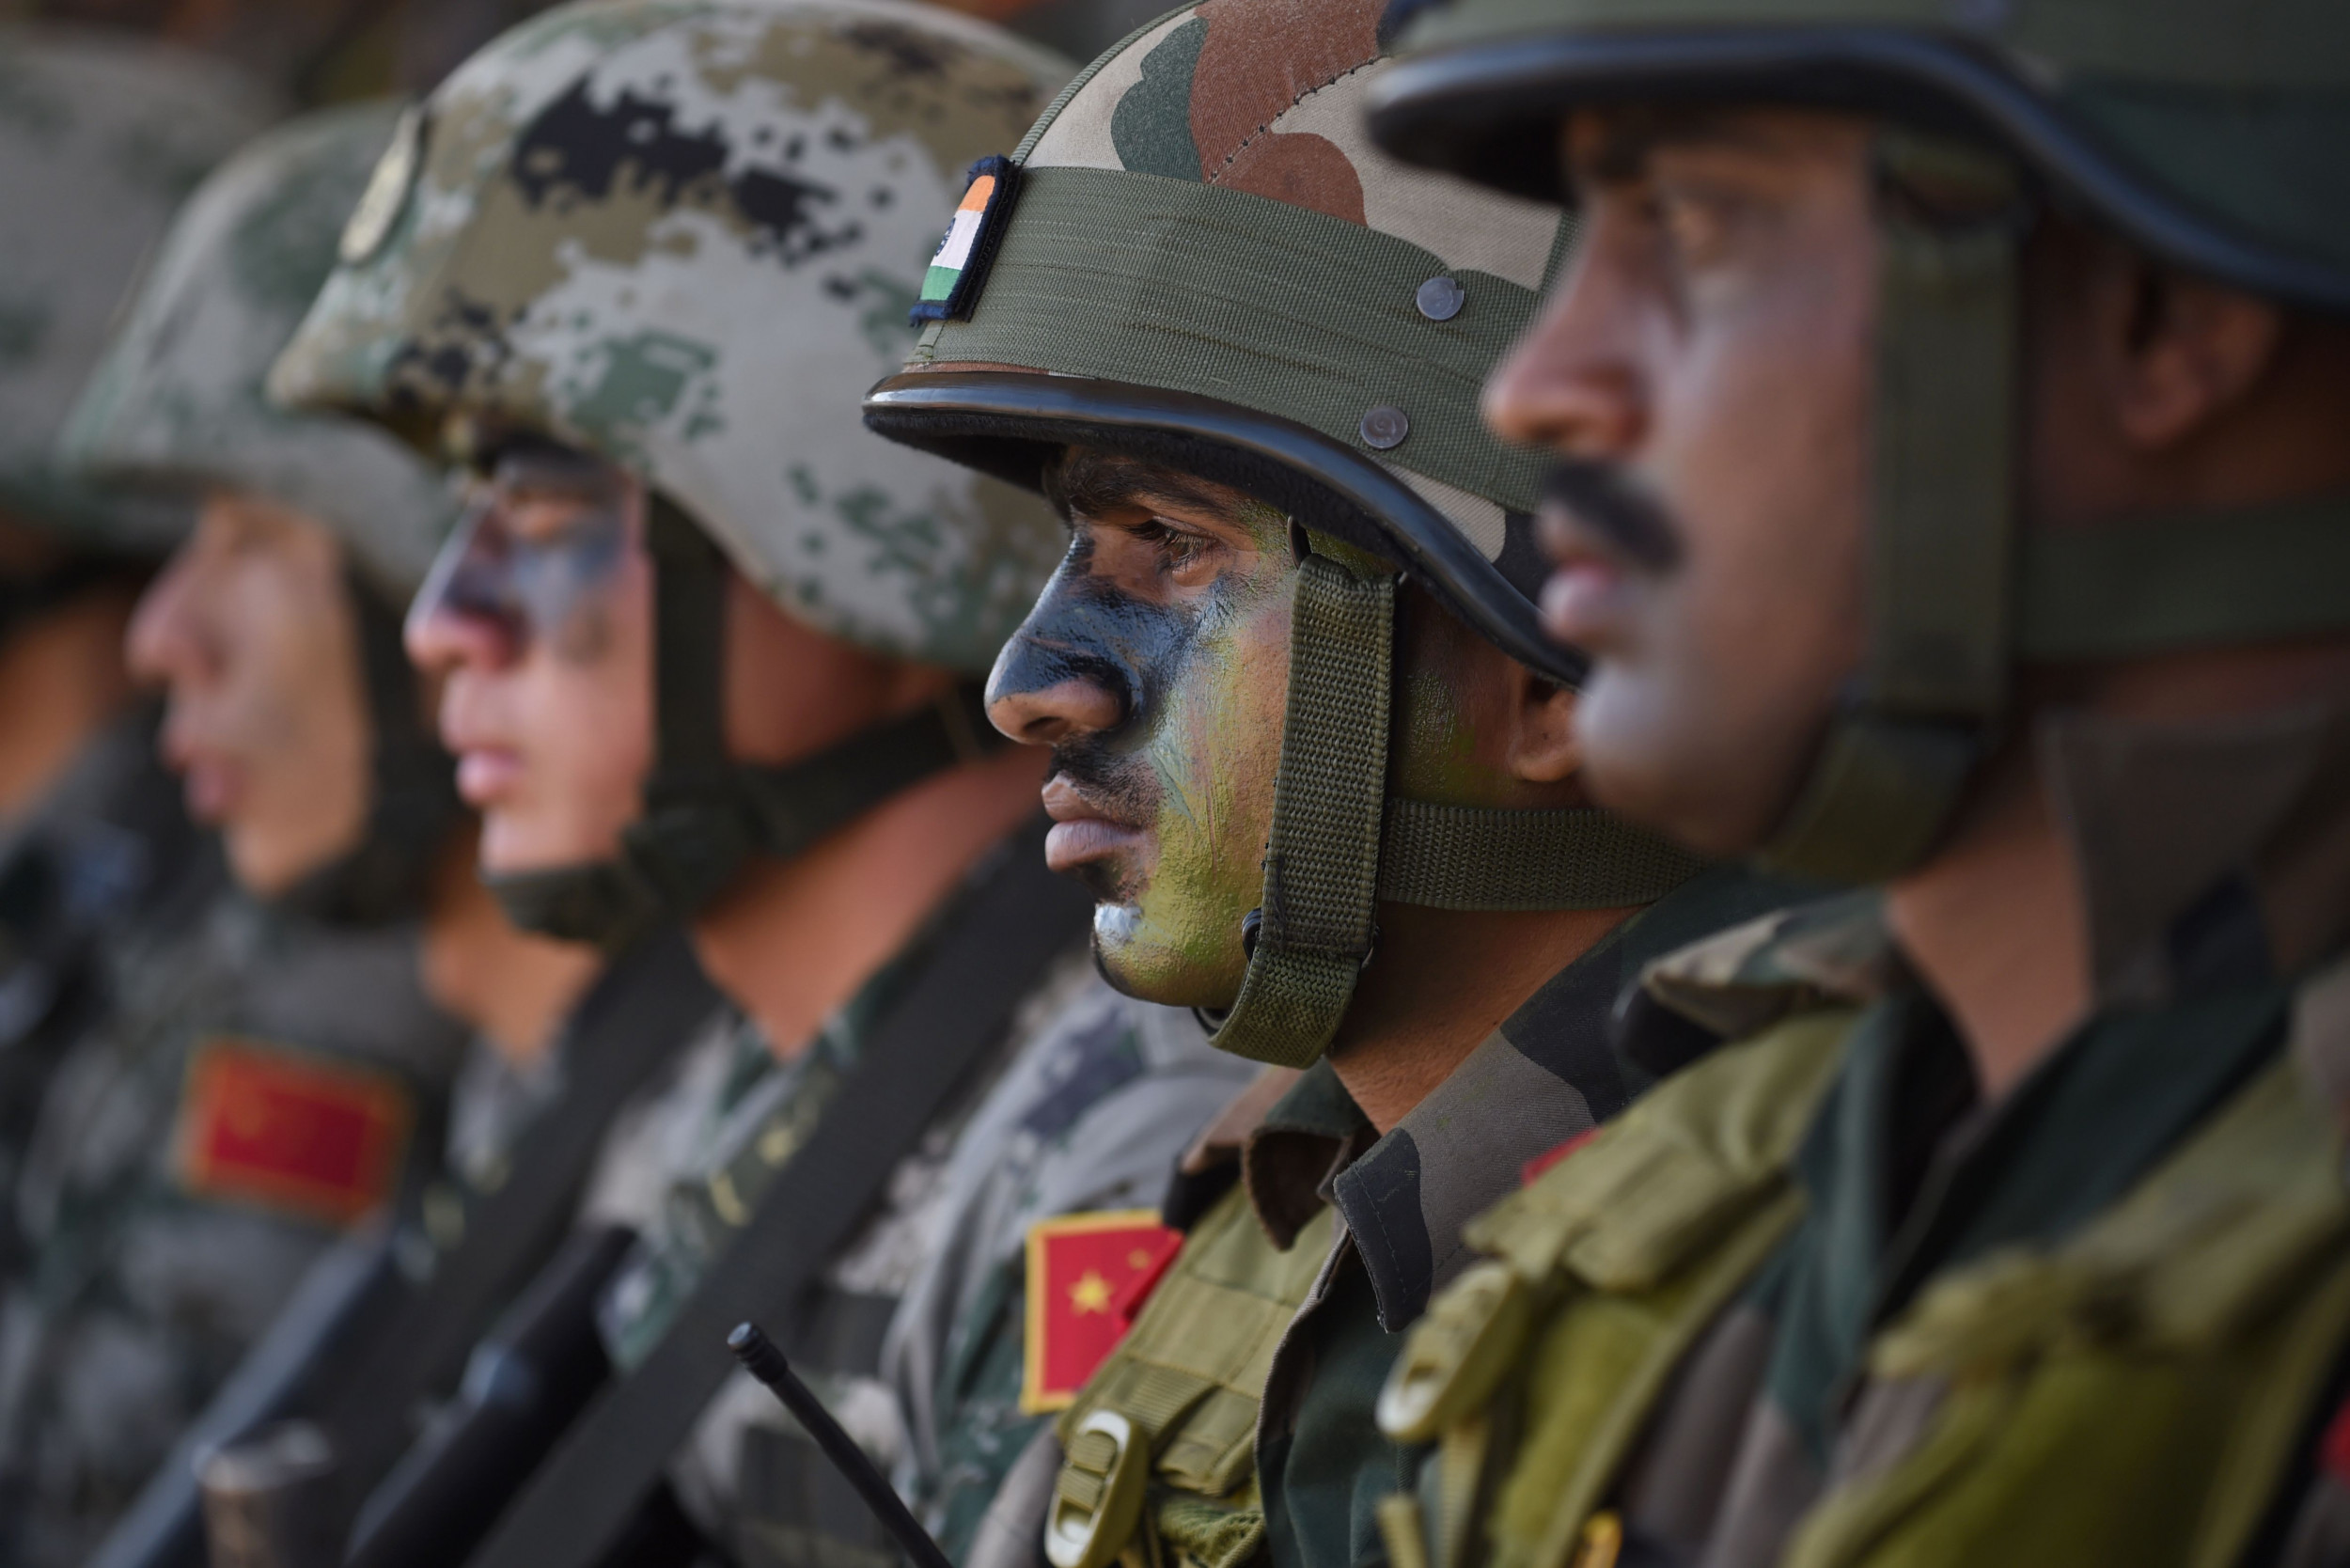 Chinese, Indian Troops Engage in 150-Strong Border Brawl With ...